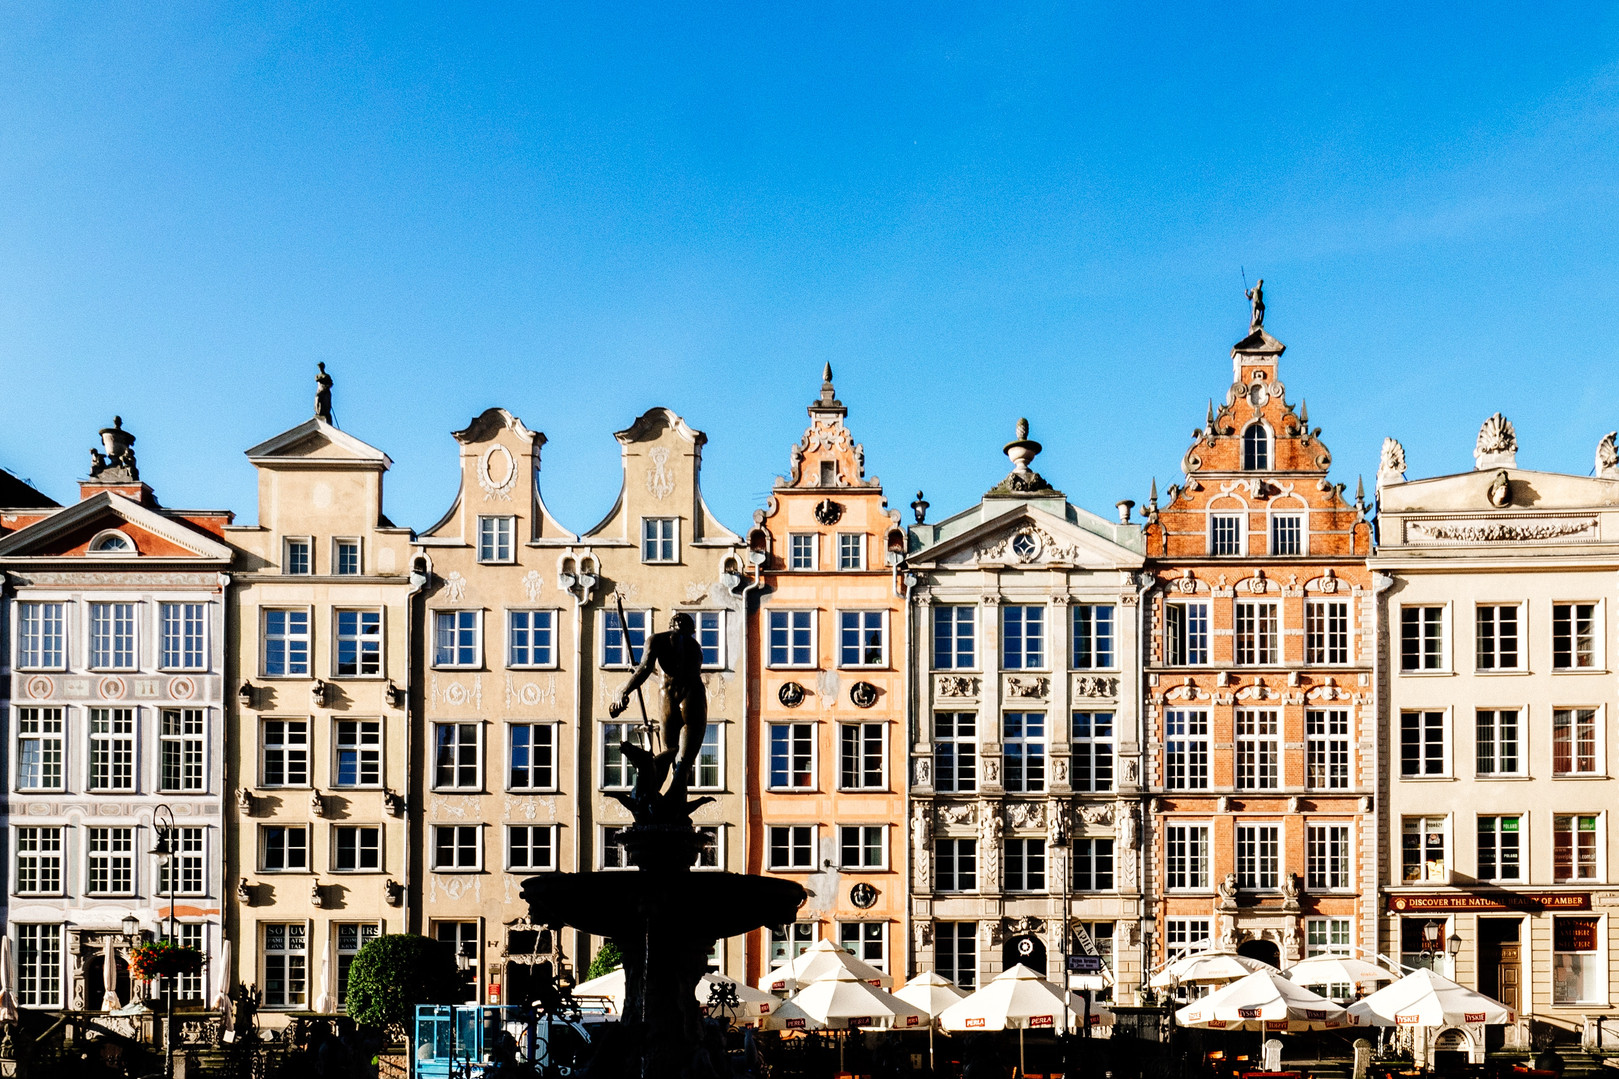 The tenements at the Long Market in Gdańsk